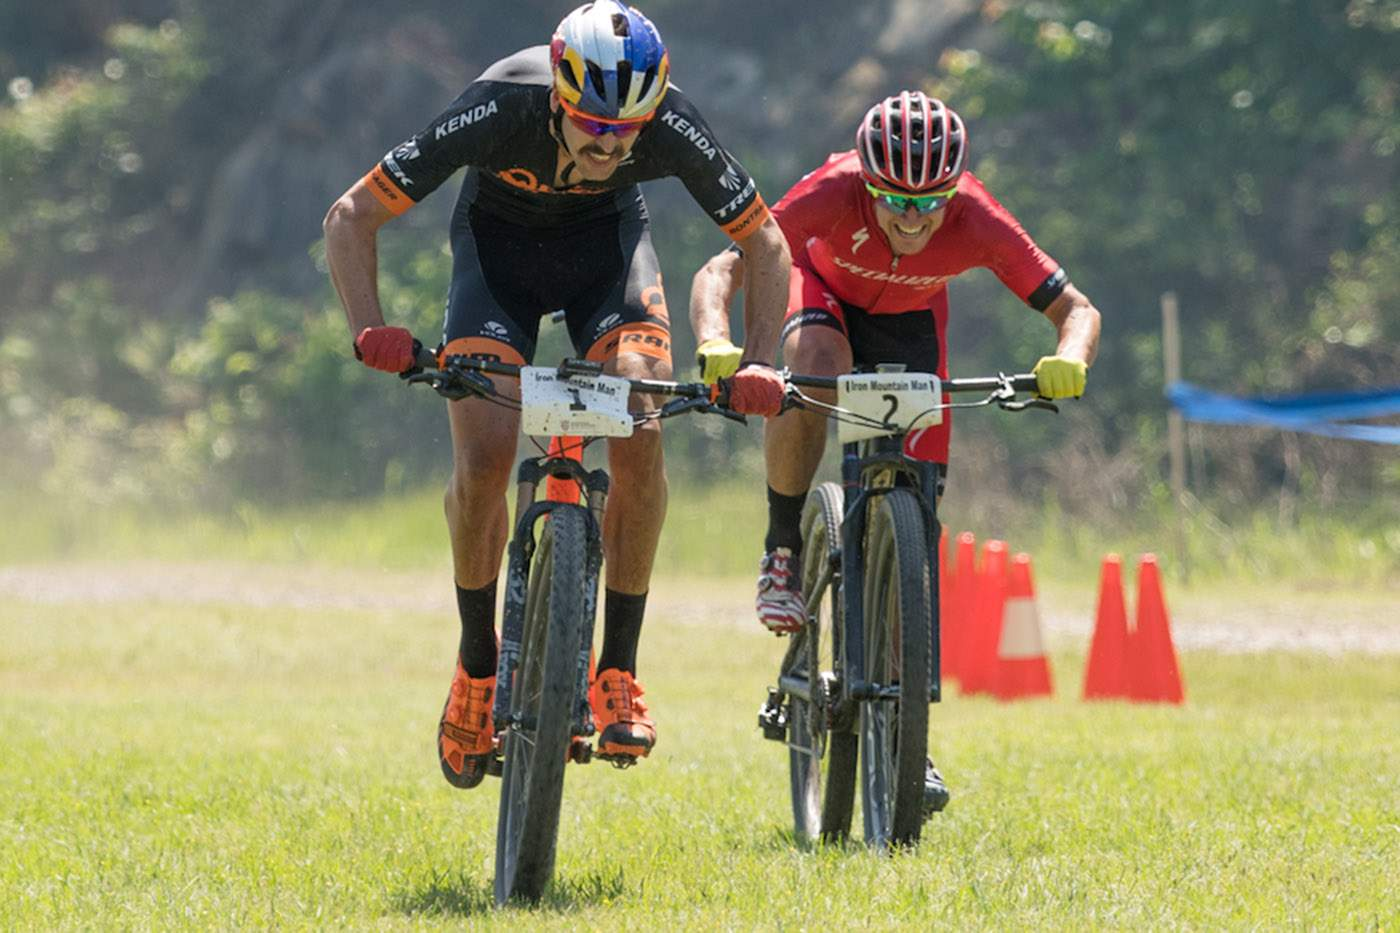 a75d91a5913 Durango's Payson McElveen, front, and Howard Grotts were in a spring to the  finish at the USA Cycling Marathon Mountain Bike National Championships on  ...